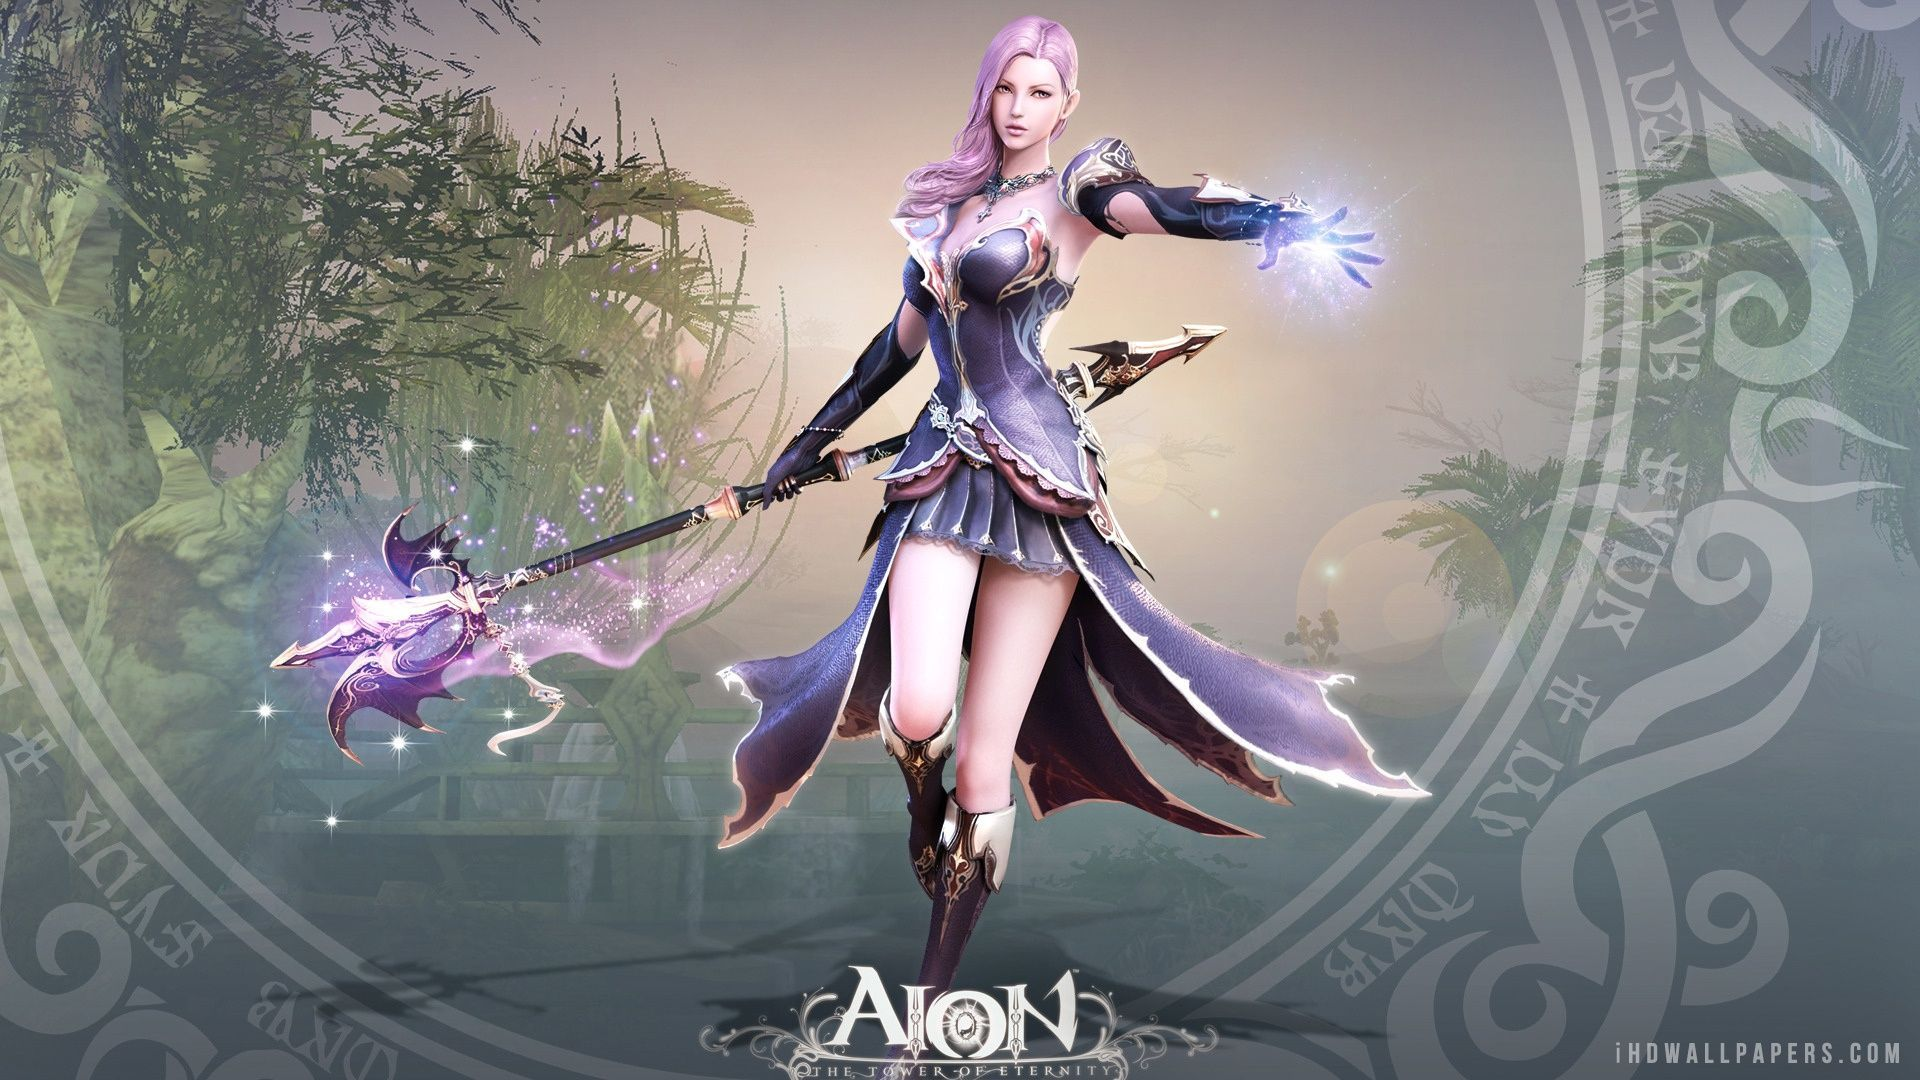 Game Girls Wallpapers - Top Free Game Girls Backgrounds ...